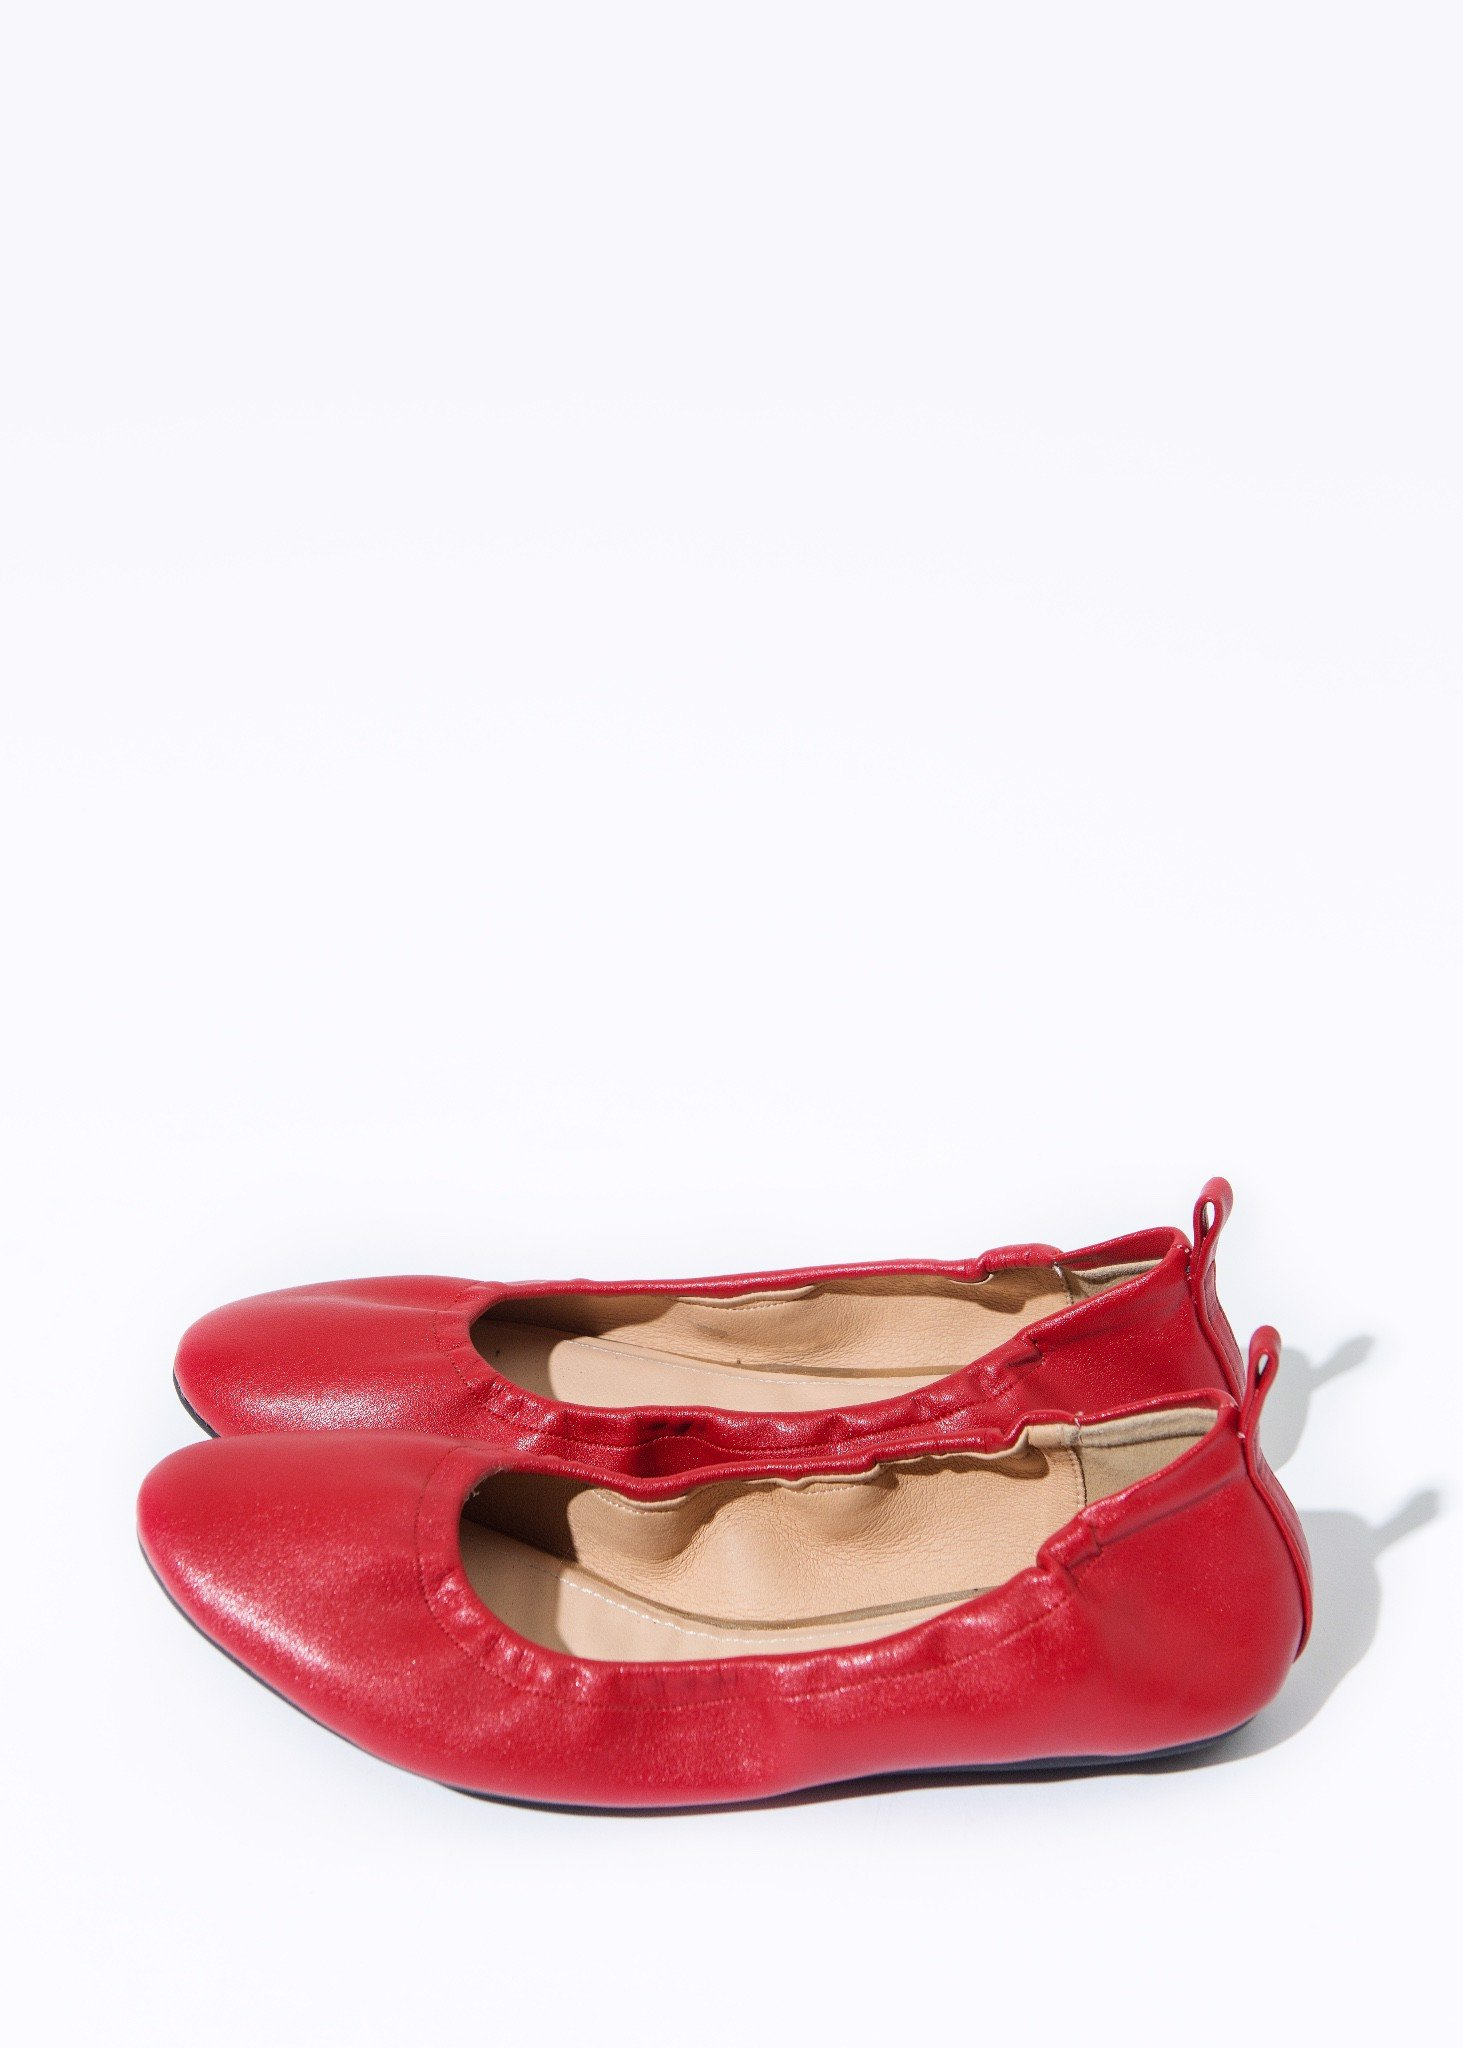 CANDY RED - THERAPY FLATS